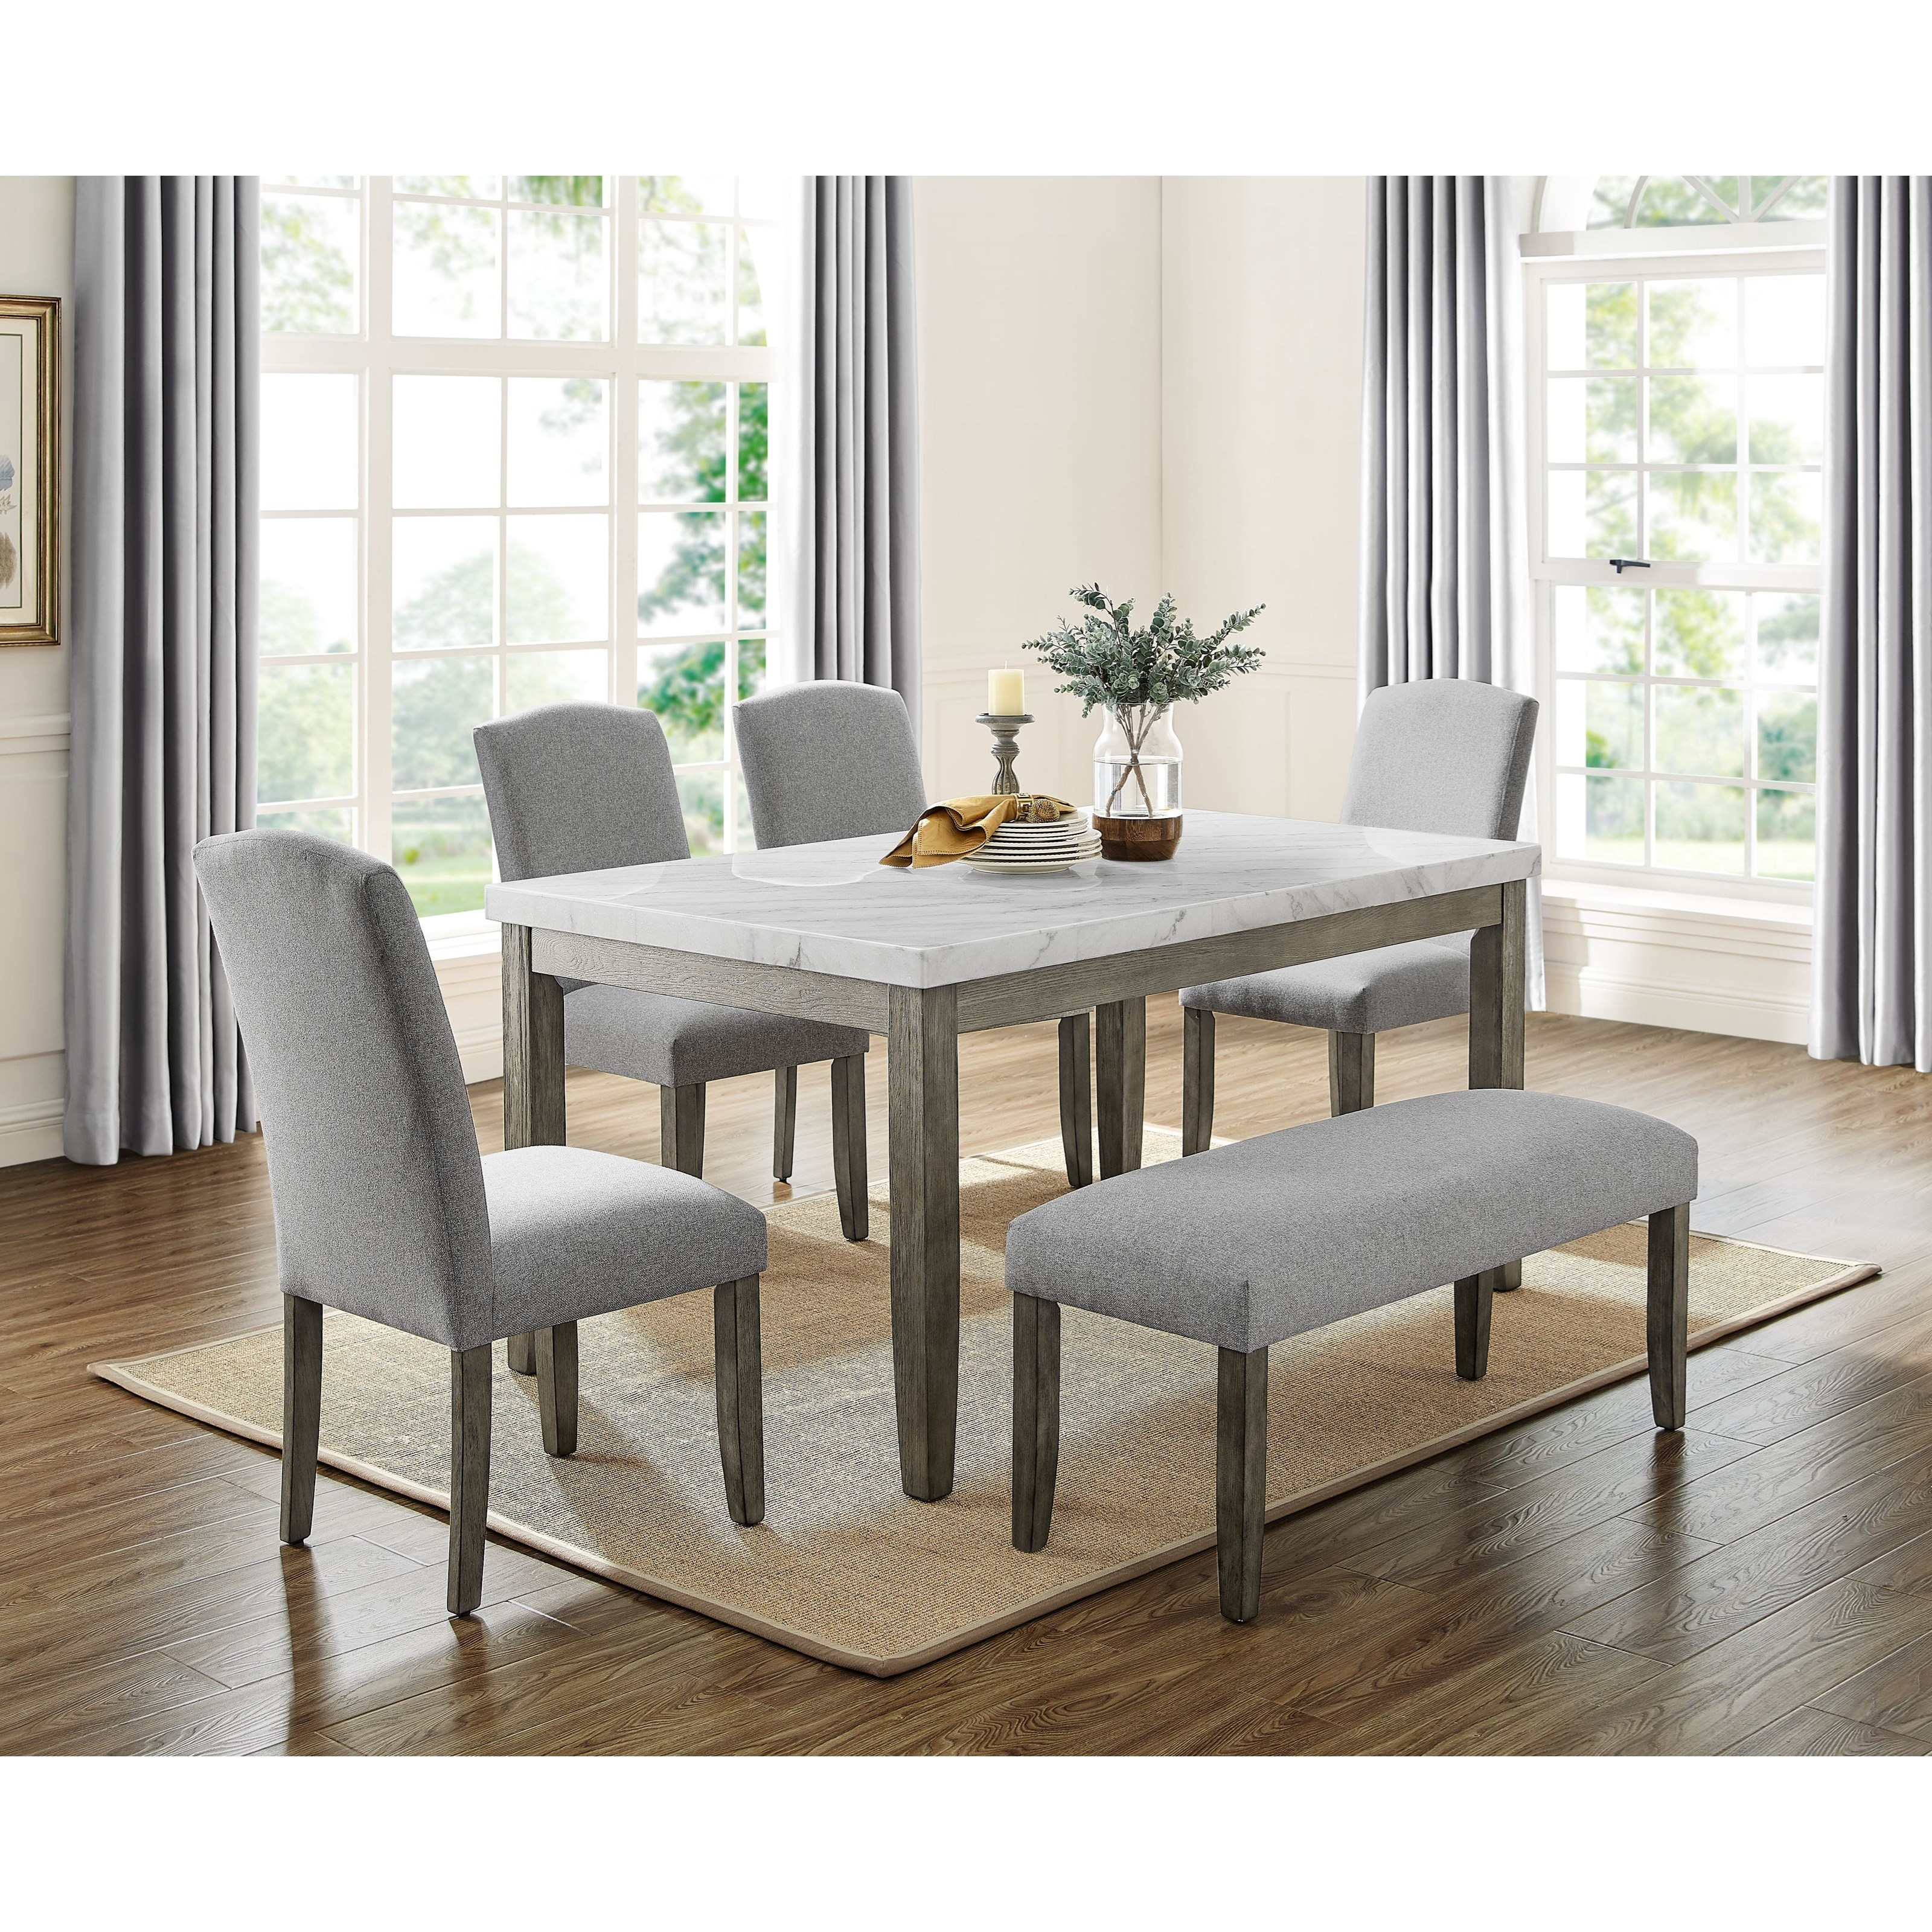 Emily Table & Chair Set with Bench by Steve Silver at Northeast Factory Direct